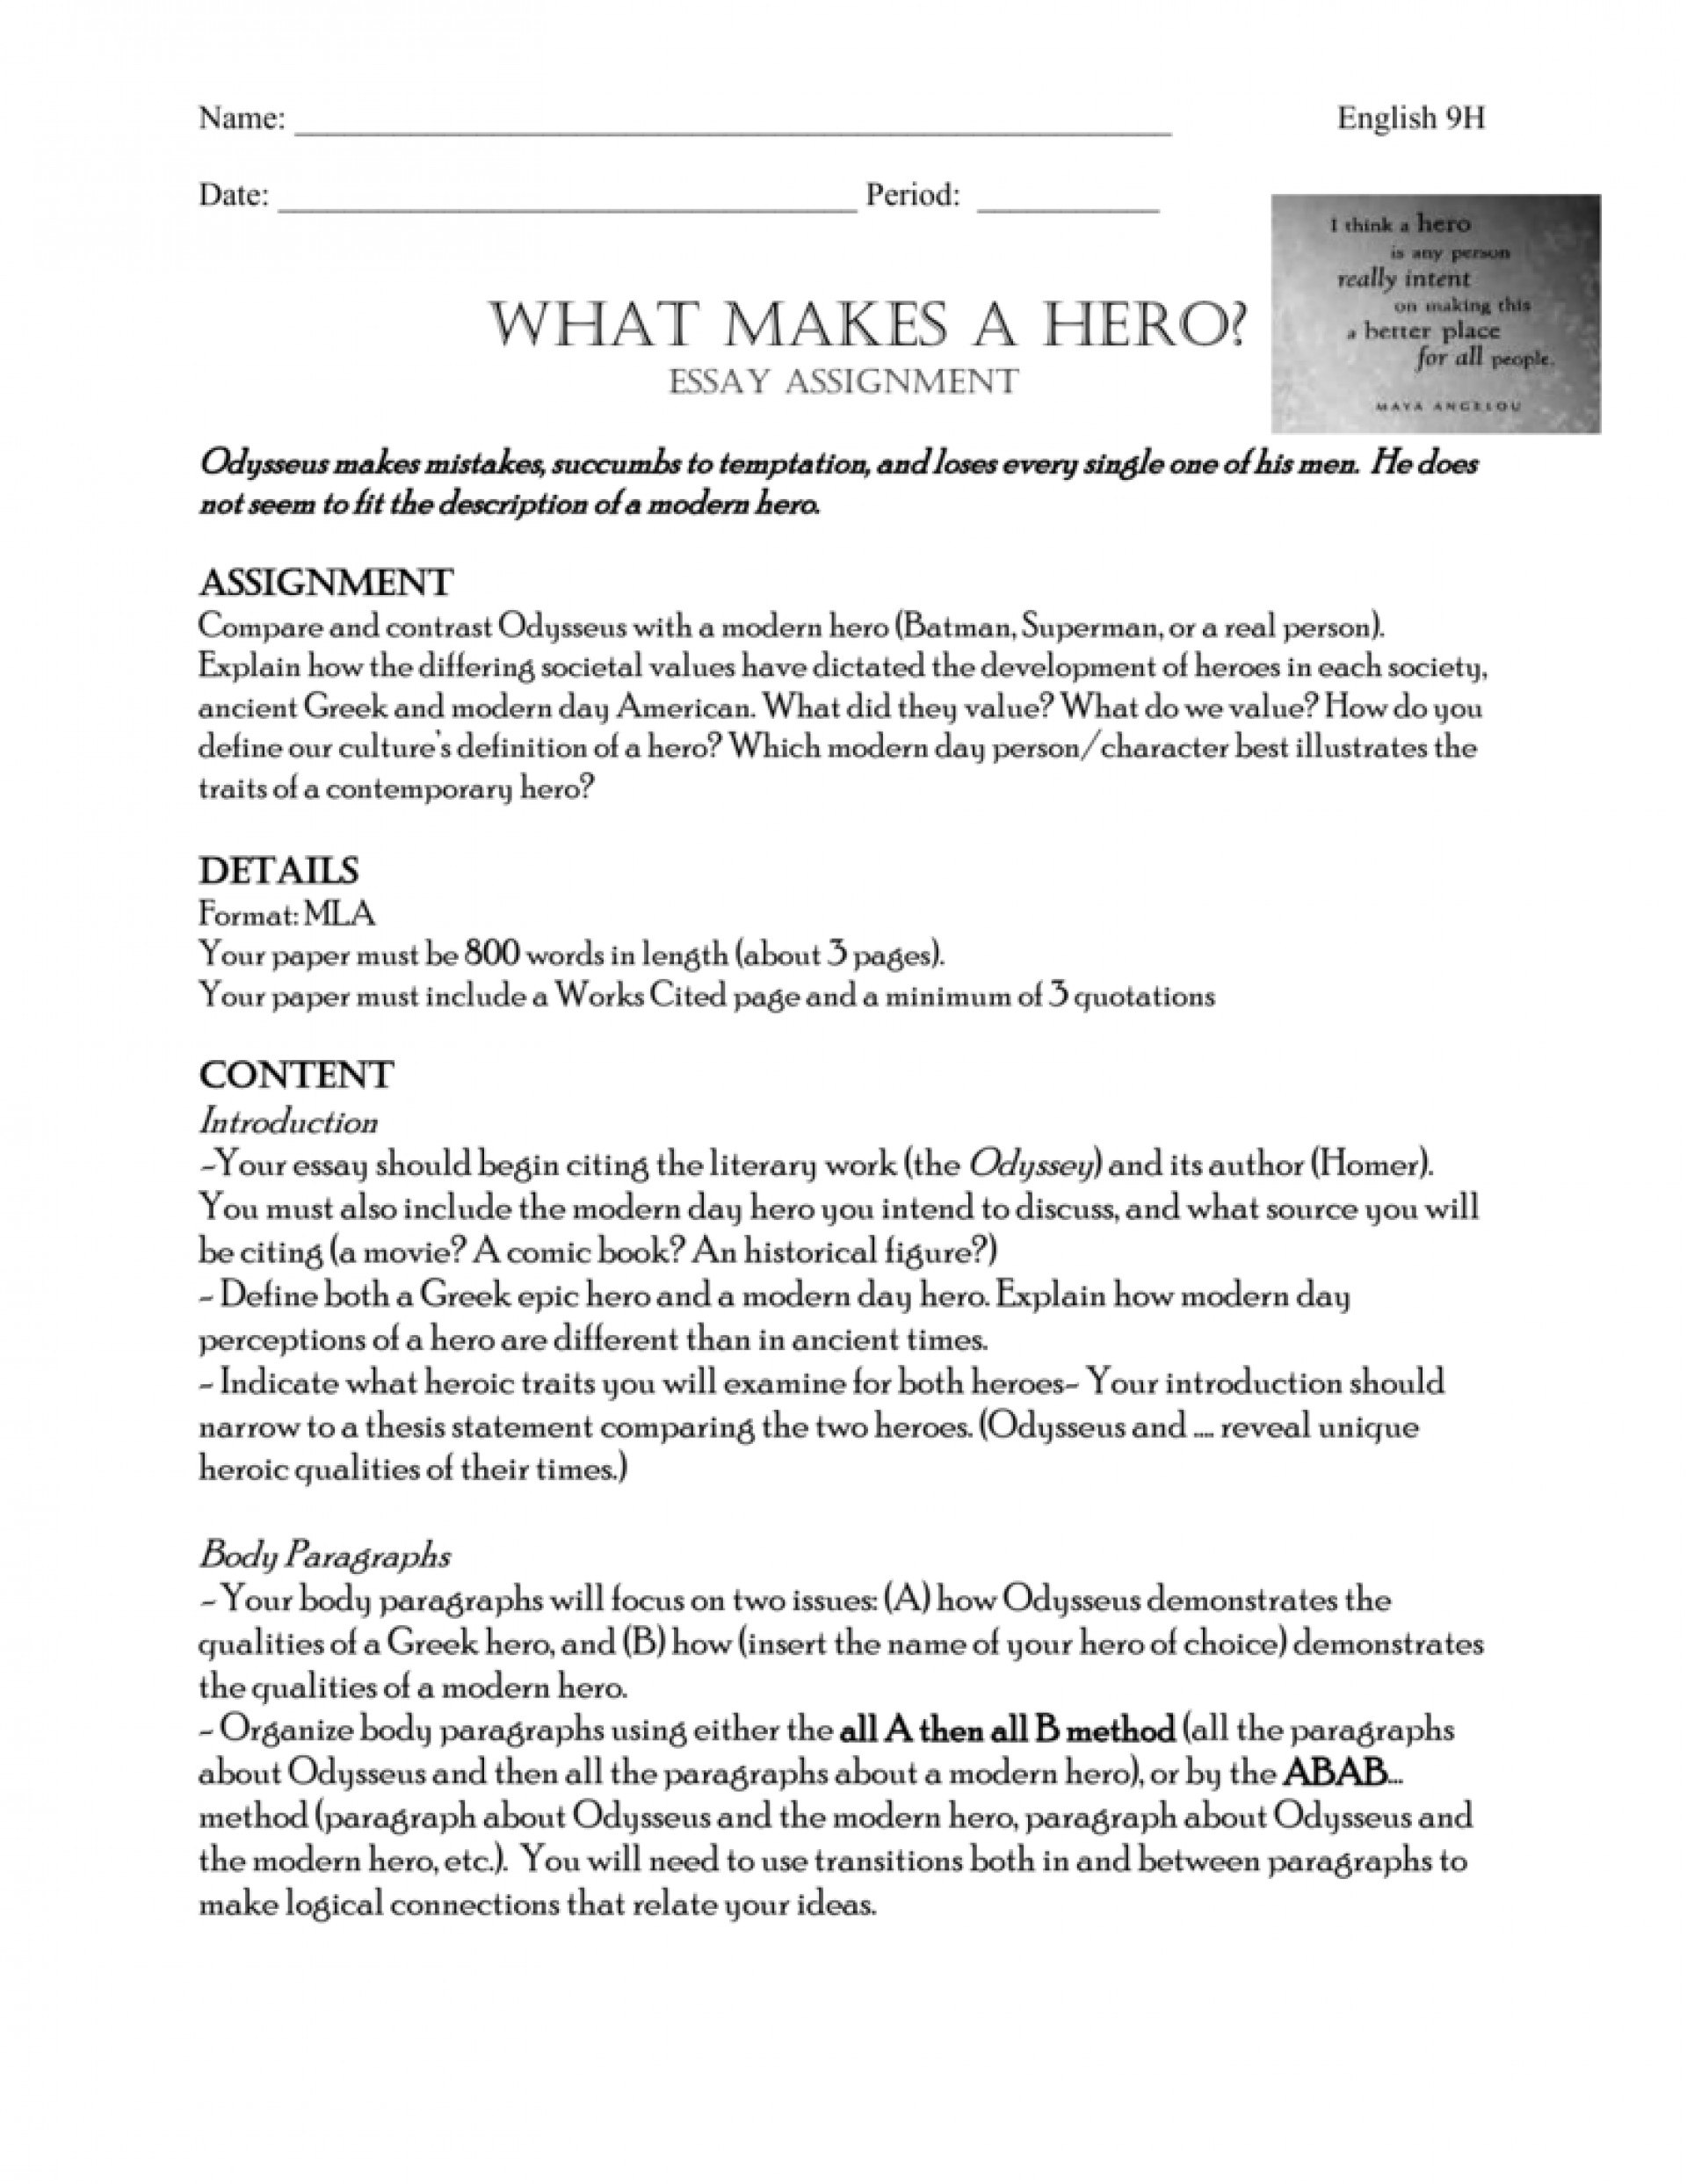 015 What Does It Mean To Hero Essay 009252566 1 Excellent Be A 1920